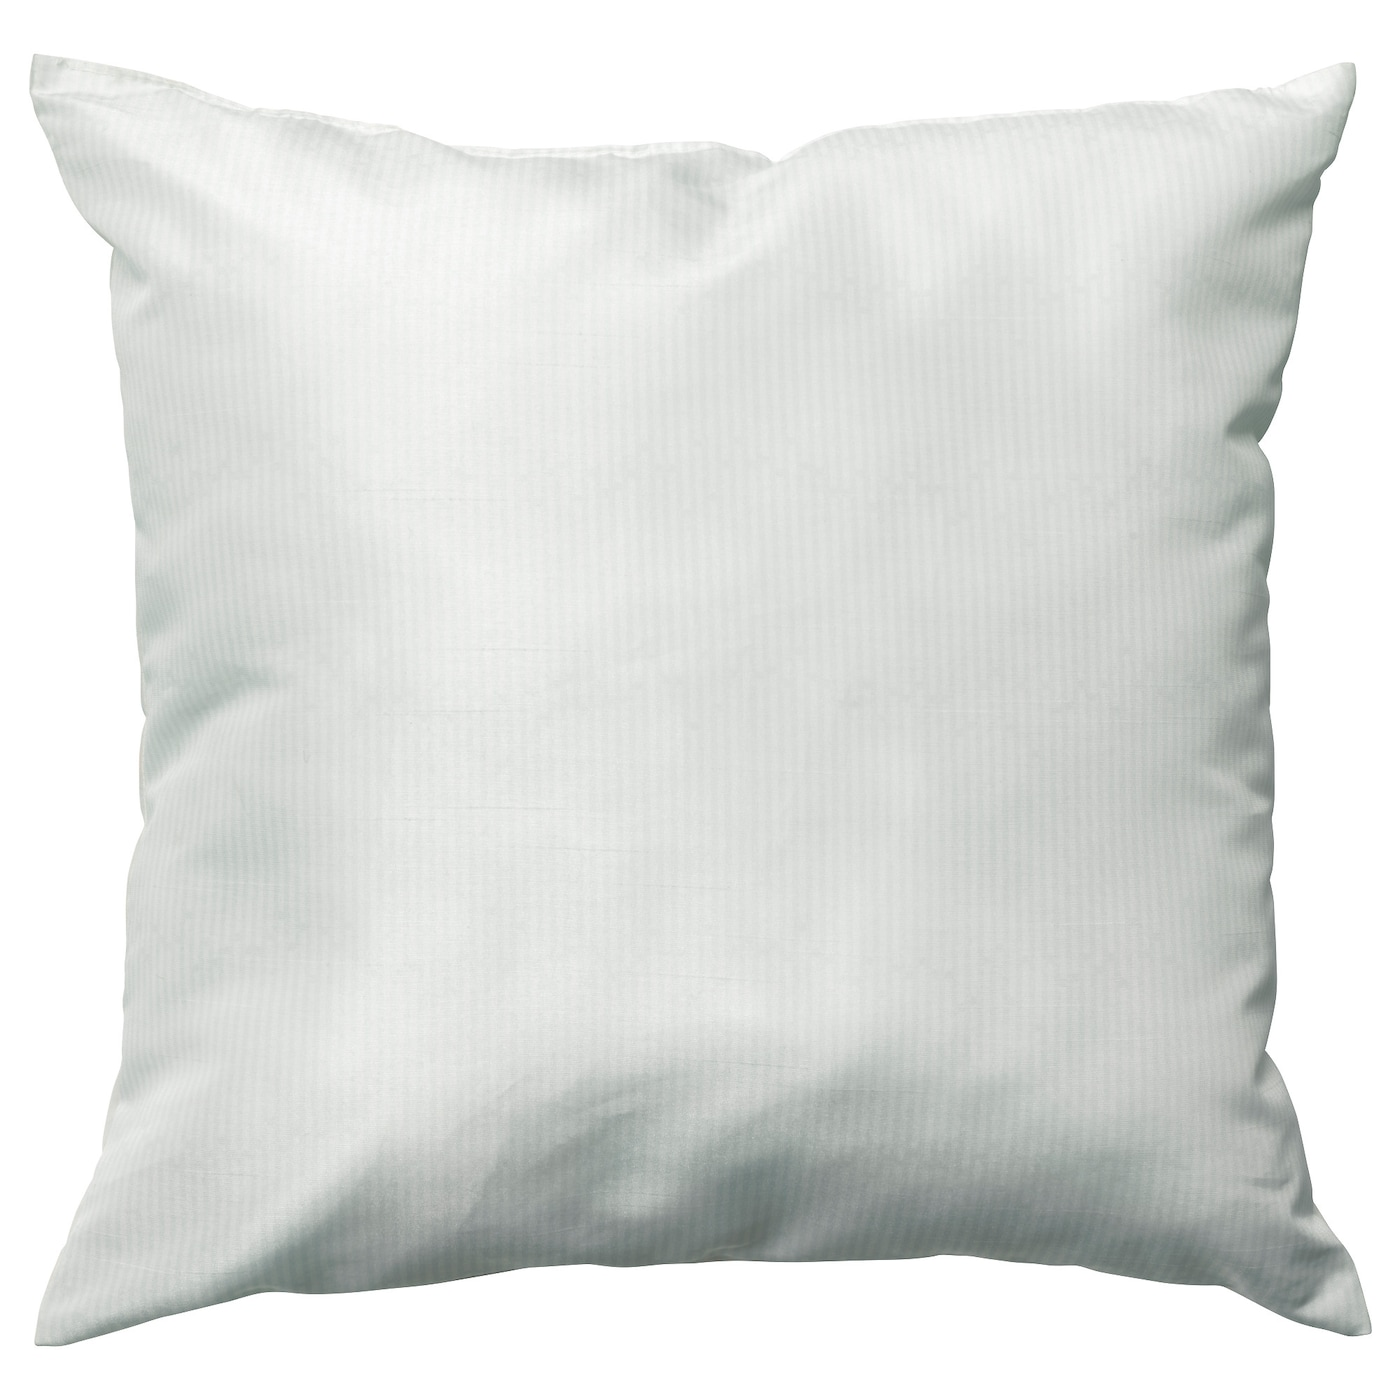 ikea ps 2017 cushion off white 50x50 cm ikea